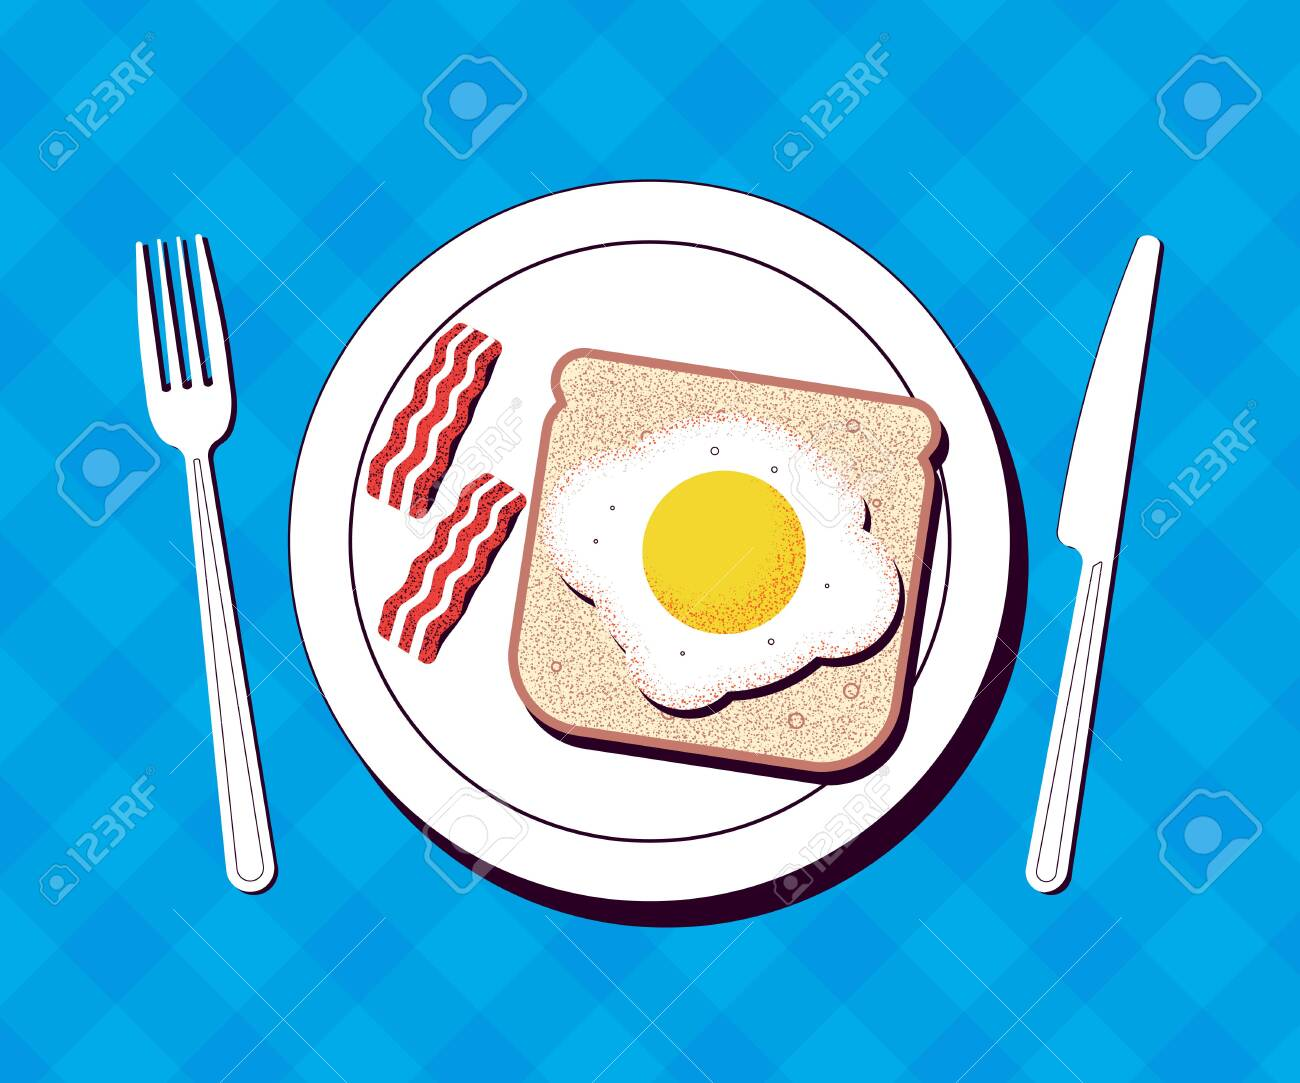 Breakfast Plate With Egg And Bacon On A Table Vector Illustration Royalty Free Cliparts Vectors And Stock Illustration Image 124048471